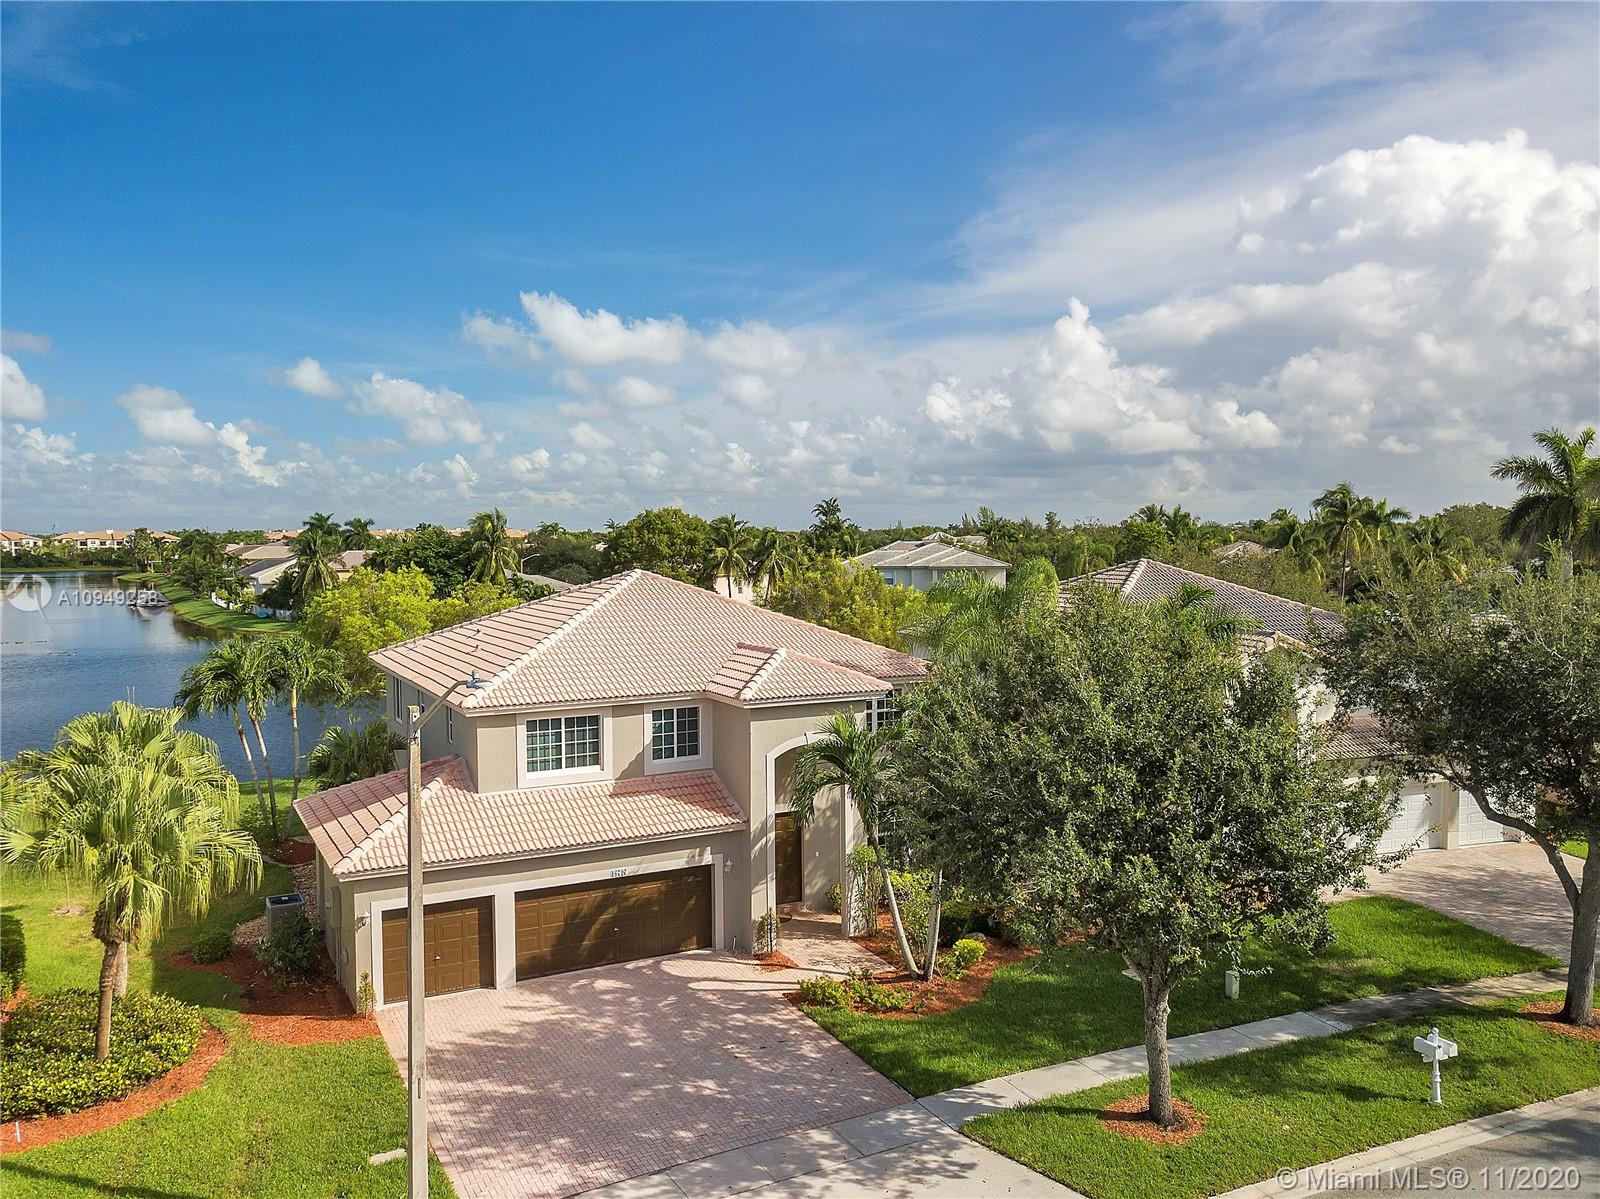 ***REMODELED LAKEFRONT SAN MARCOS MODEL HOME***SPECTACULAR WIDE & DEEP LAKE VIEWS***THE BREAKERS-PEMBROKE ISLES*** Featuring: Open Kitchen, Maple Wood Cabinetry, Granite Countertops, Stainless Steel Appliances, Serving Bar, Pantry, Spacious 2nd FL Master Suite w/Sitting/Guest Room, Tray Ceiling, ***RENOVATED BATHS*** Dual Walk-in Closets, Custom Wood Vanities, Jetted Jacuzzi Tub, Frameless Glass Shower Enclosure, Modern Lighting, New Porcelain Tile Flooring, Vinyl Plank Staircase, Freshly Painted Interior & Exterior, Expansive Balcony & Covered Patio ***NEW HURRICANE IMPACT WINDOWS & DOORS*** Tranquil WIDE & DEEP LAKE VIEWS*** Oversized Lot and Tropical Landscaping. The Perfect Family Home….  Pembroke Isles Amenities: Clubhouse, Pools, Tennis, Basketball, Fitness Center, Tot Lots & More!!!